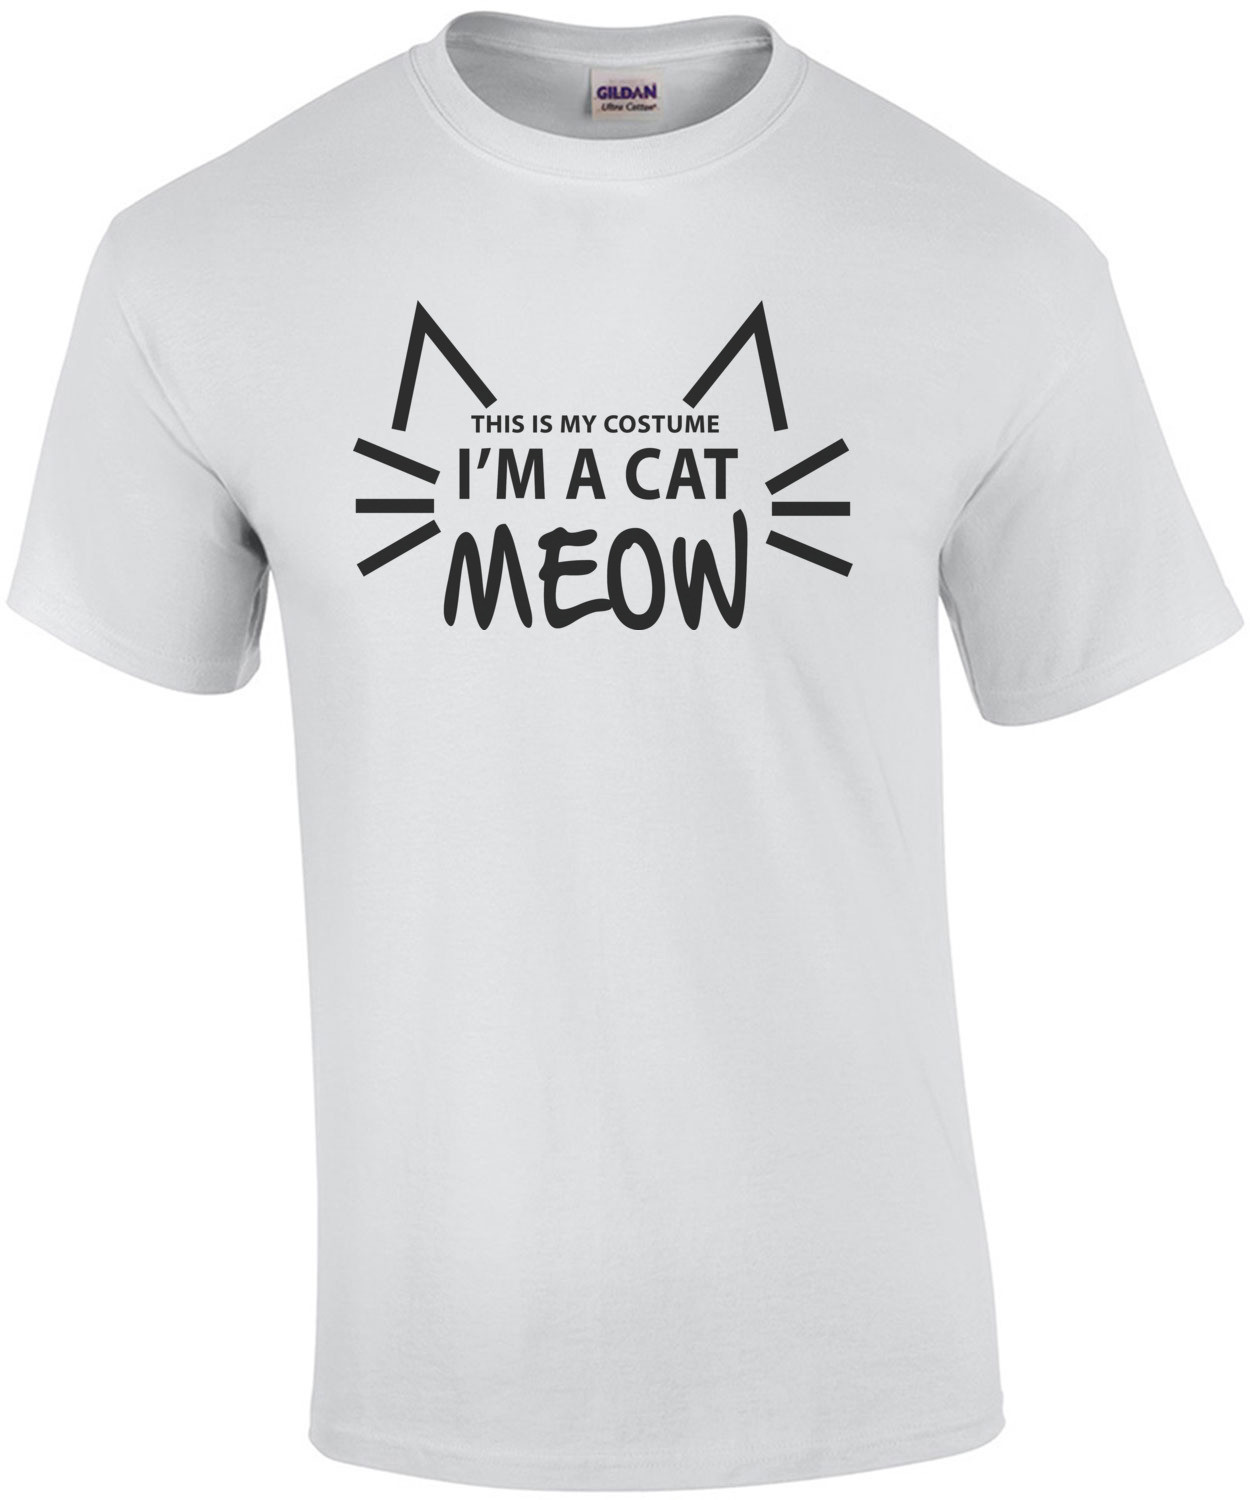 This is my costume - I'm a cat Meow - T-Shirt